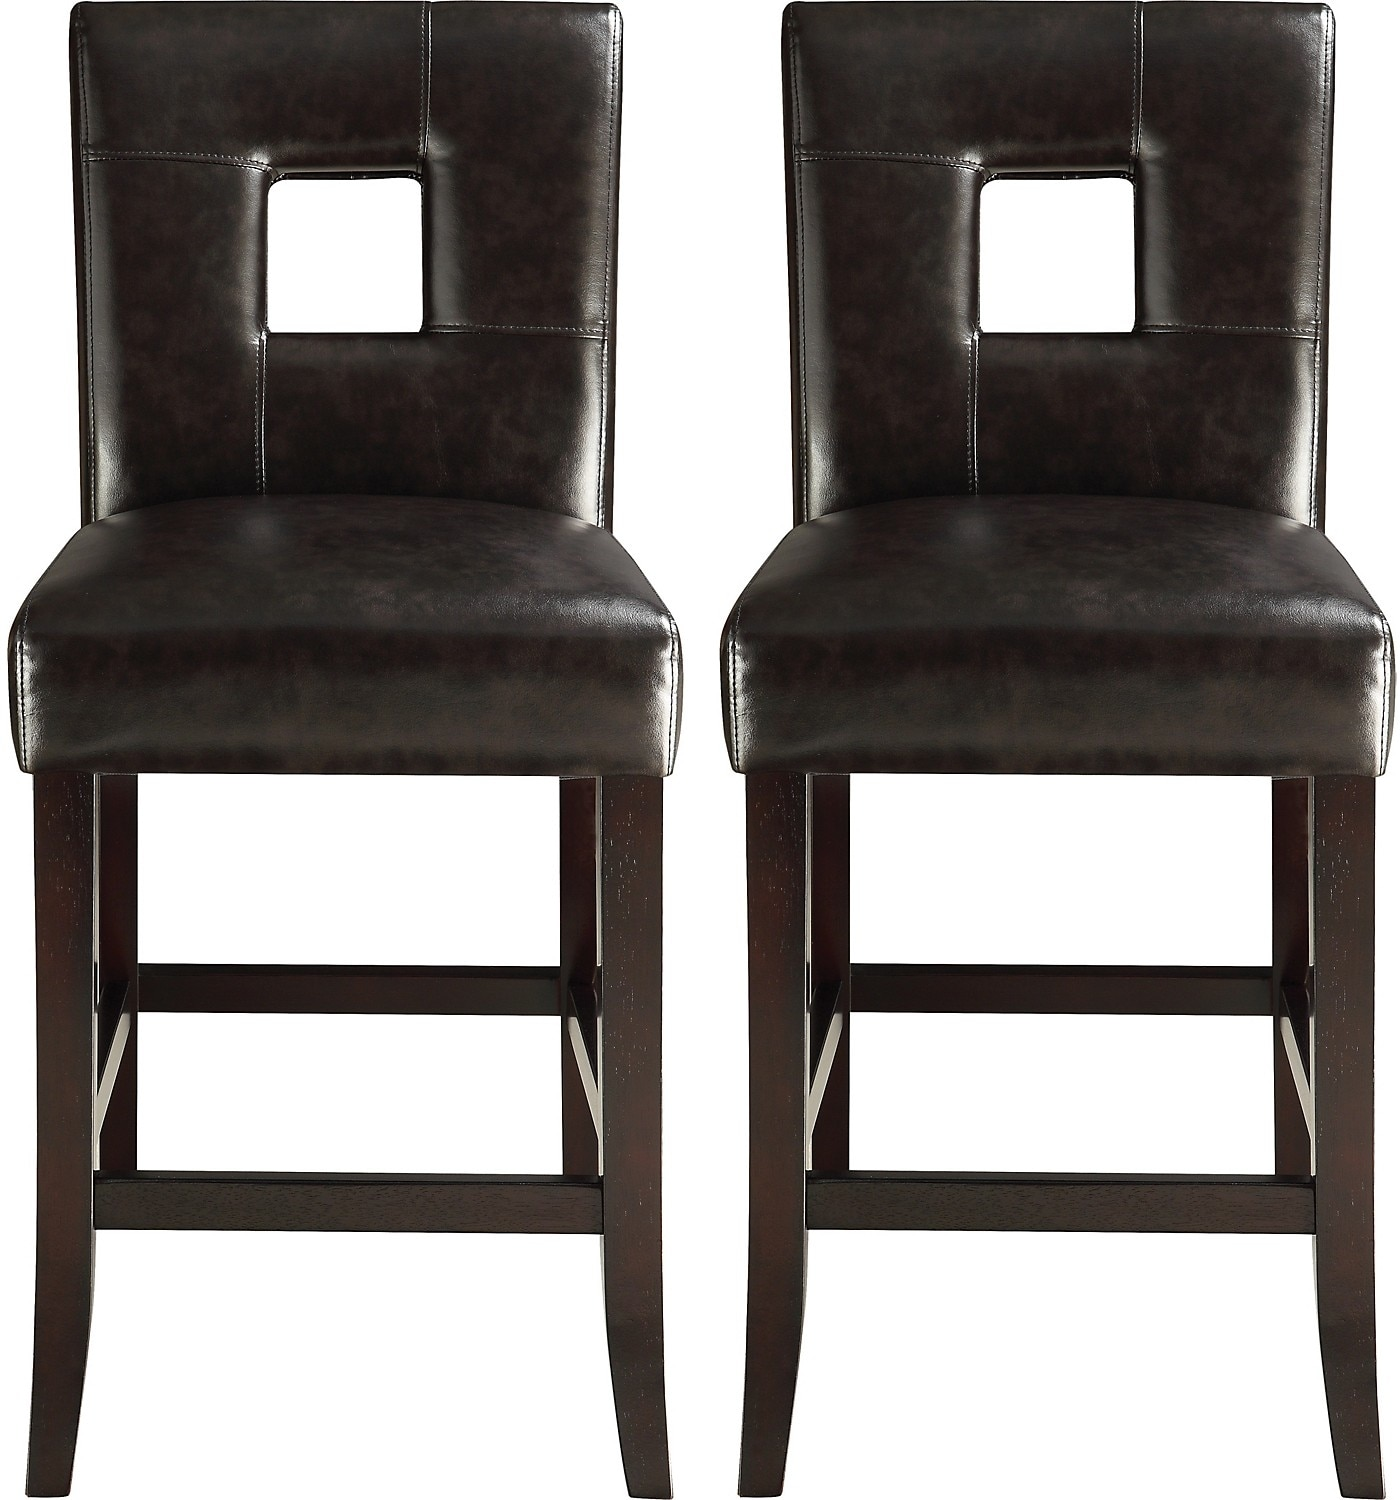 McKenna 2-Piece Counter-Height Dining Chair Package – Brown